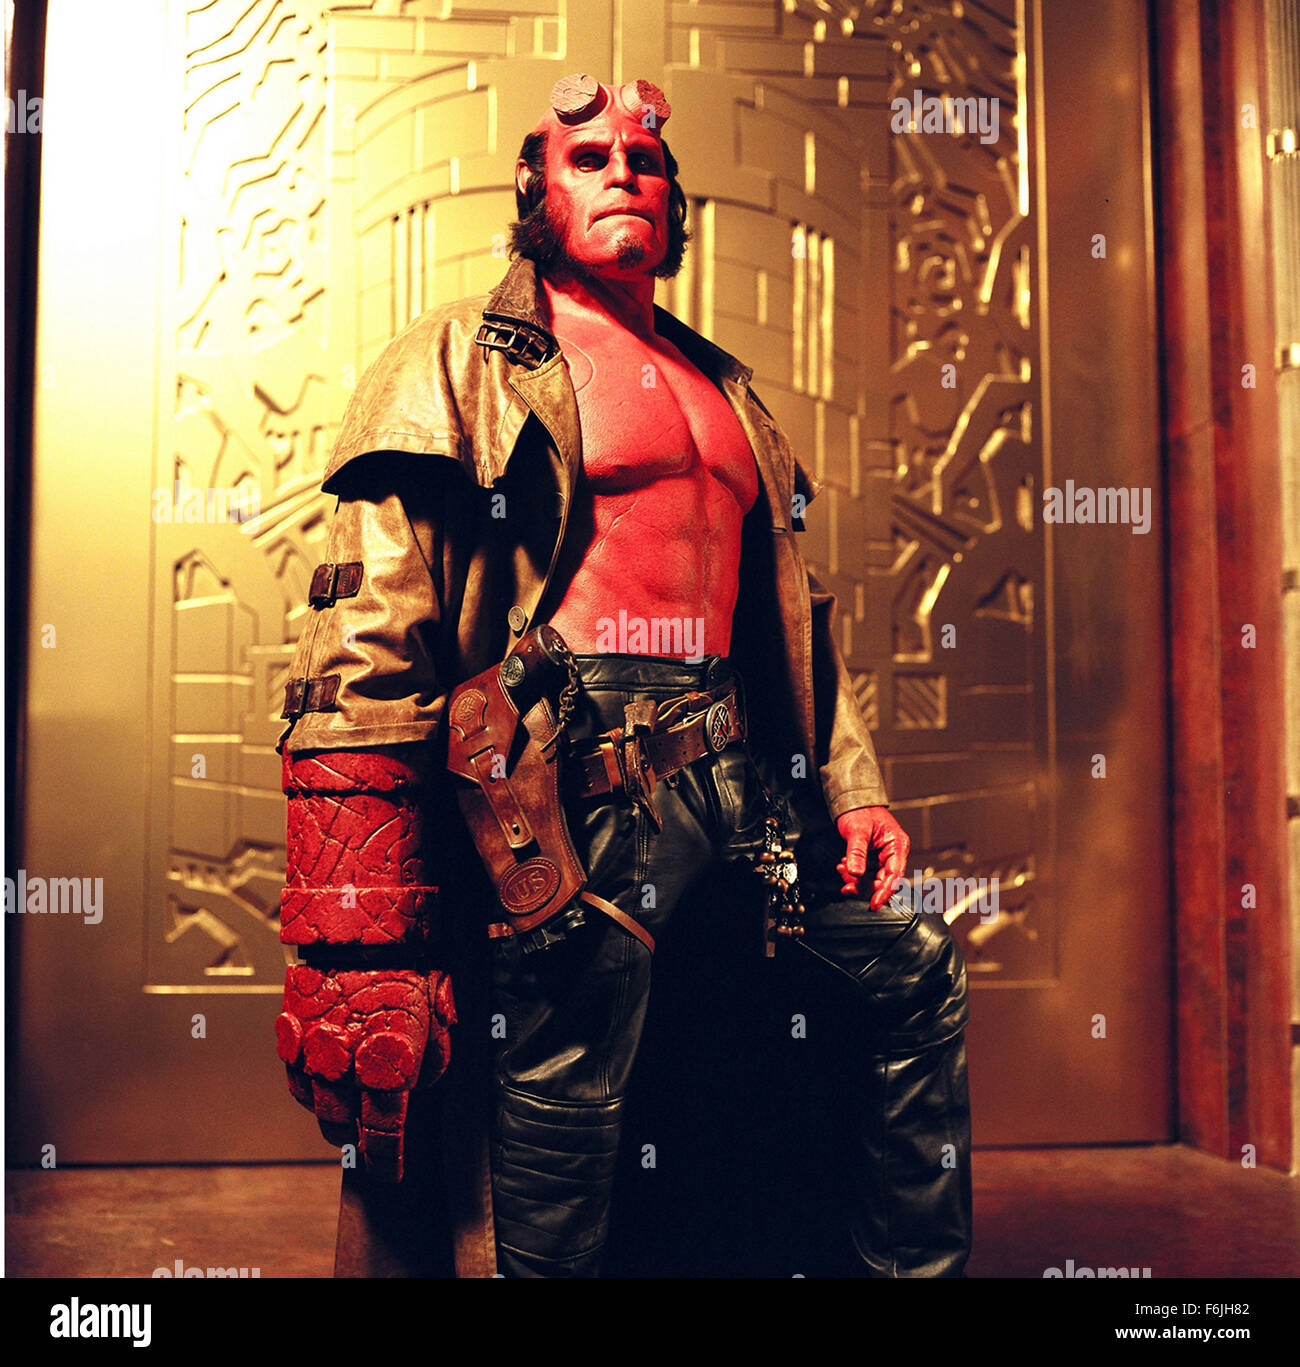 RELEASE DATE: April 2, 2004. MOVIE TITLE: Hellboy. STUDIO: Revolution Studios. PLOT: In the final days of World - Stock Image